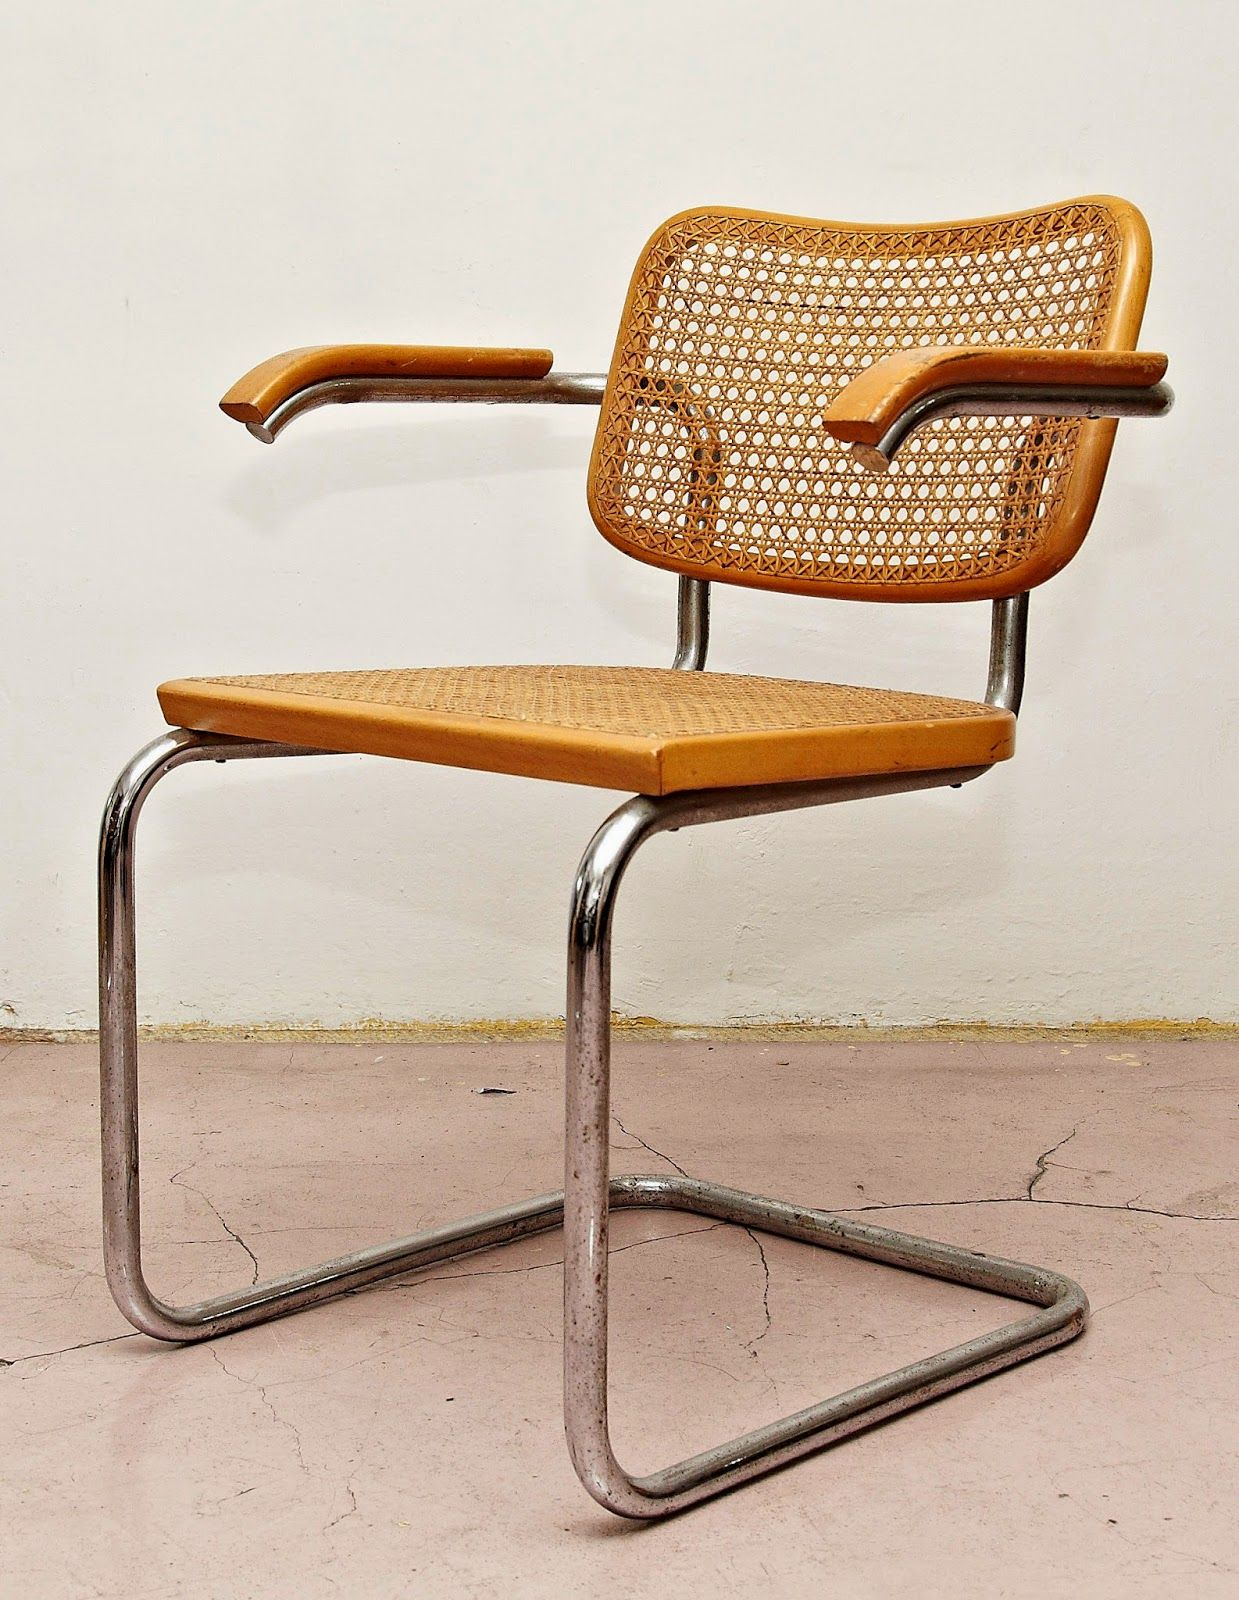 Ourso Designs Marcel Breuer Cesca Chair 1928